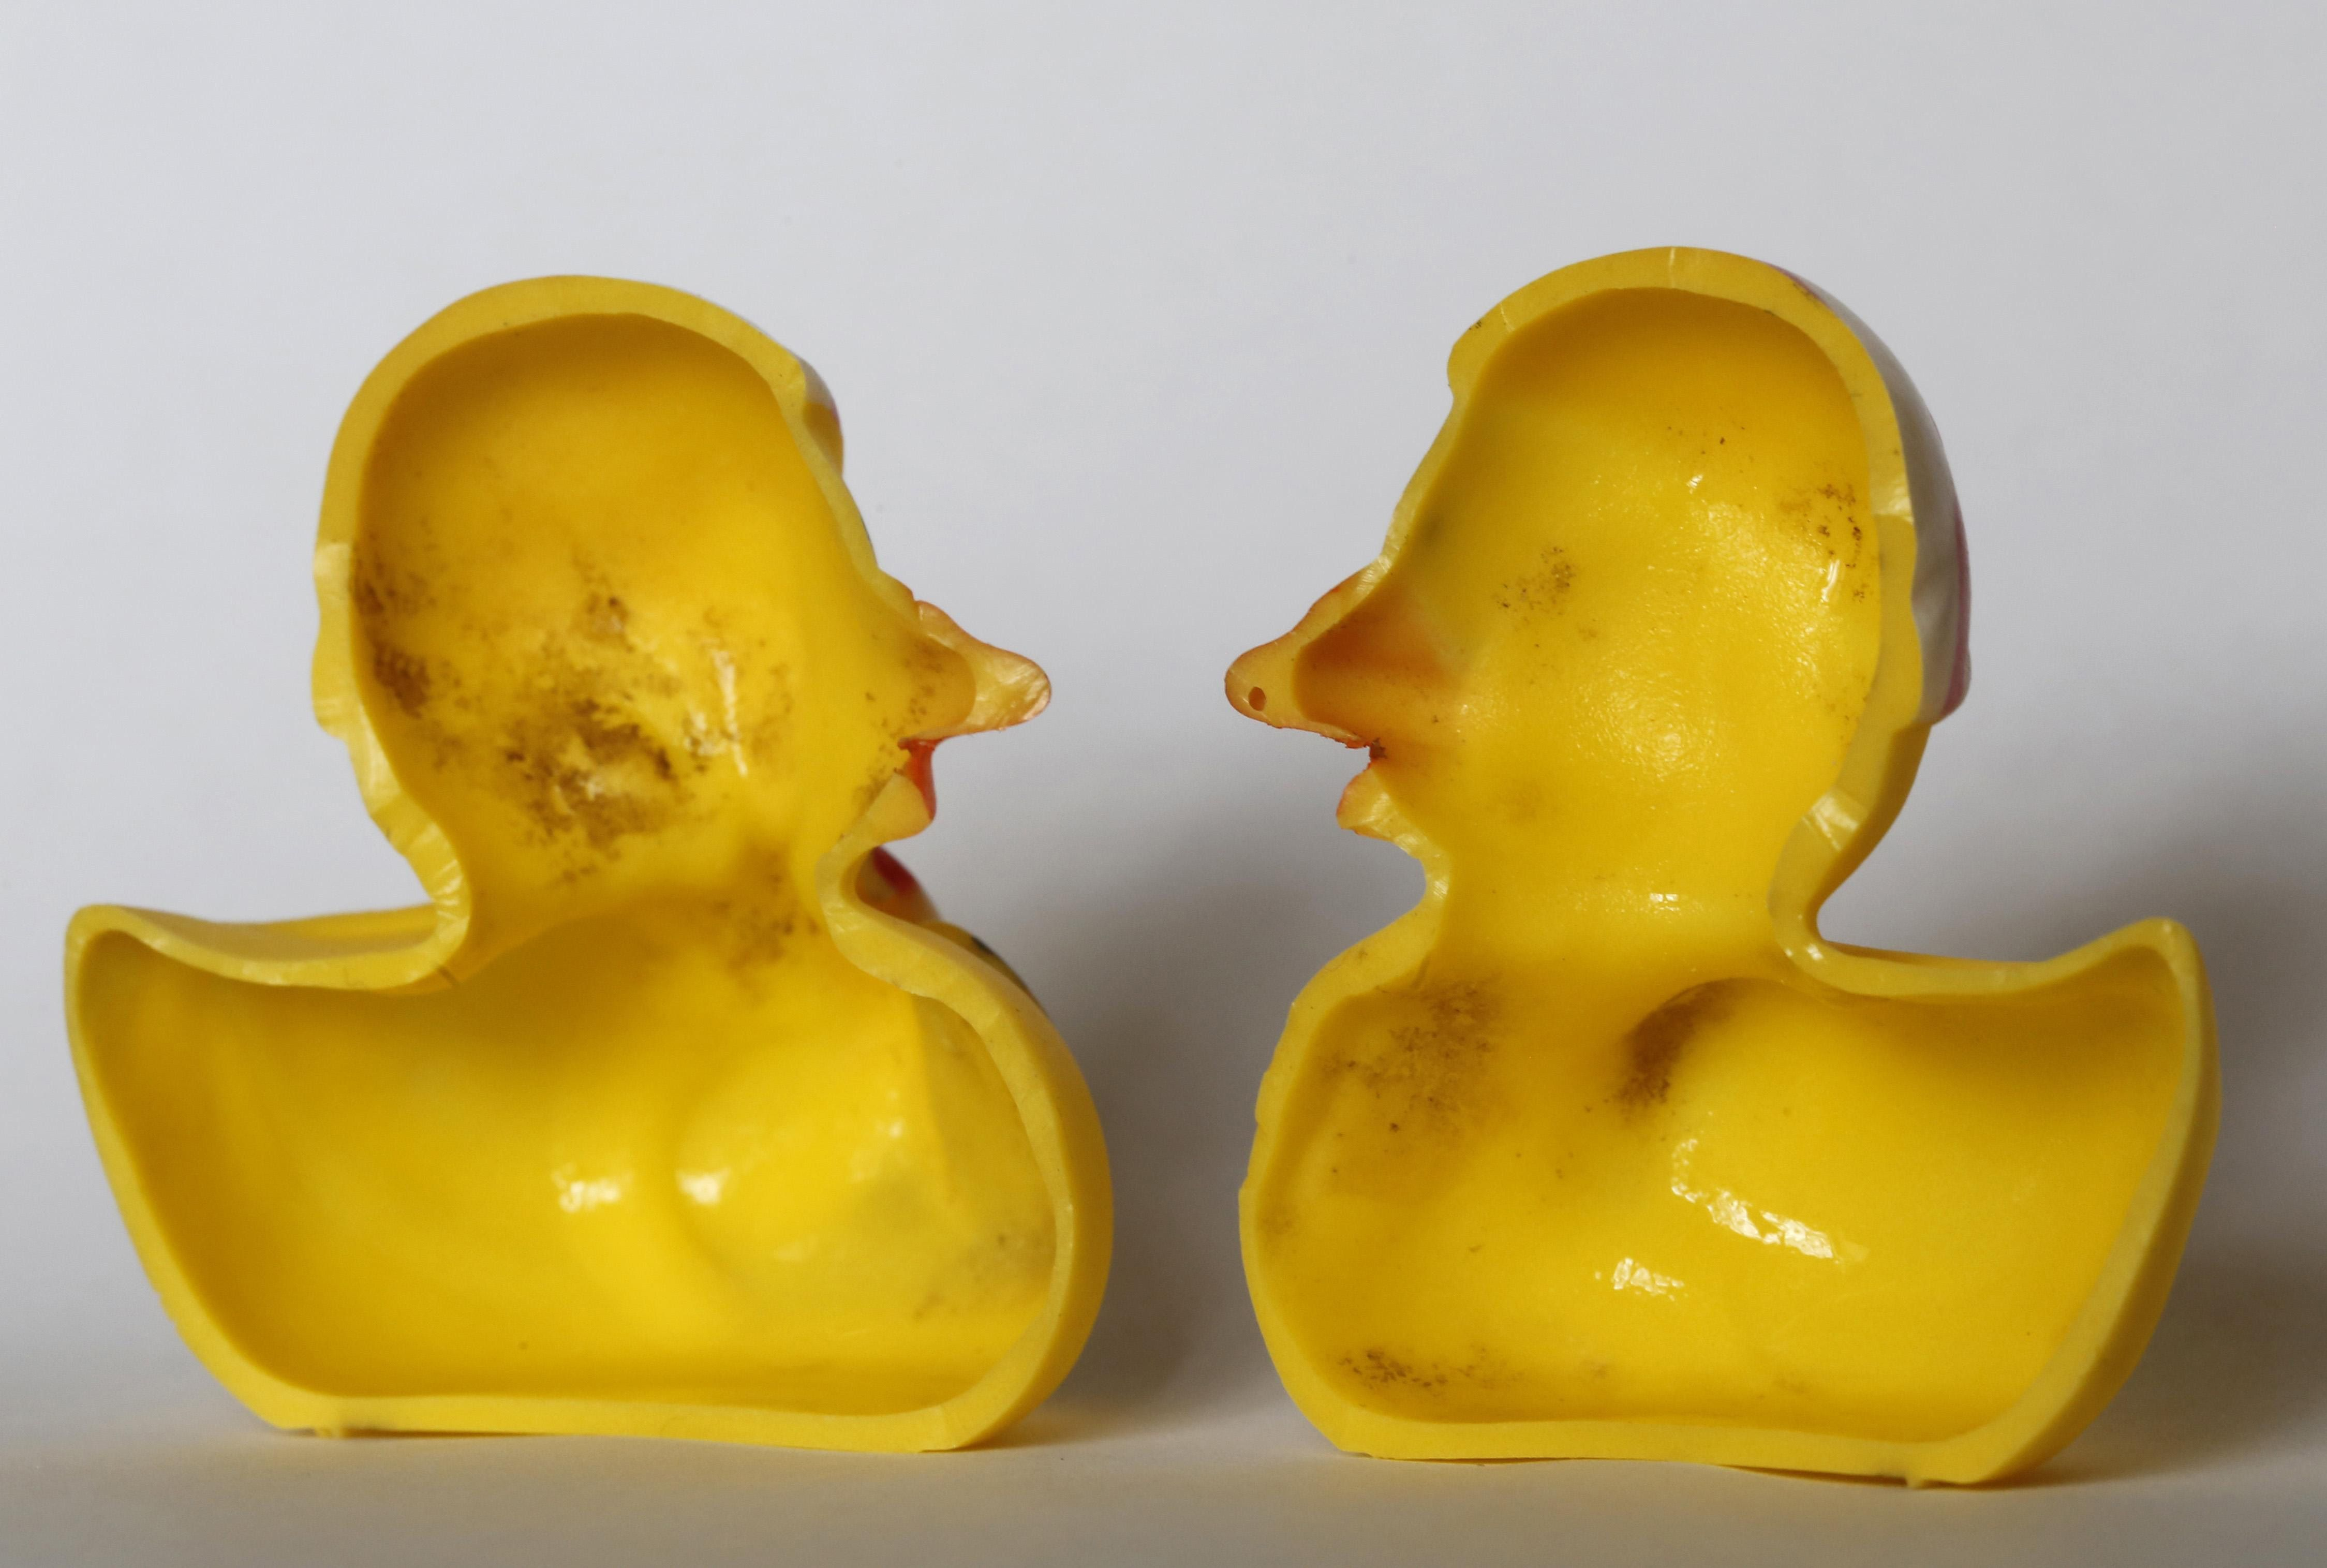 Rubber Ducks Can Breed Bacteria, According to New Study